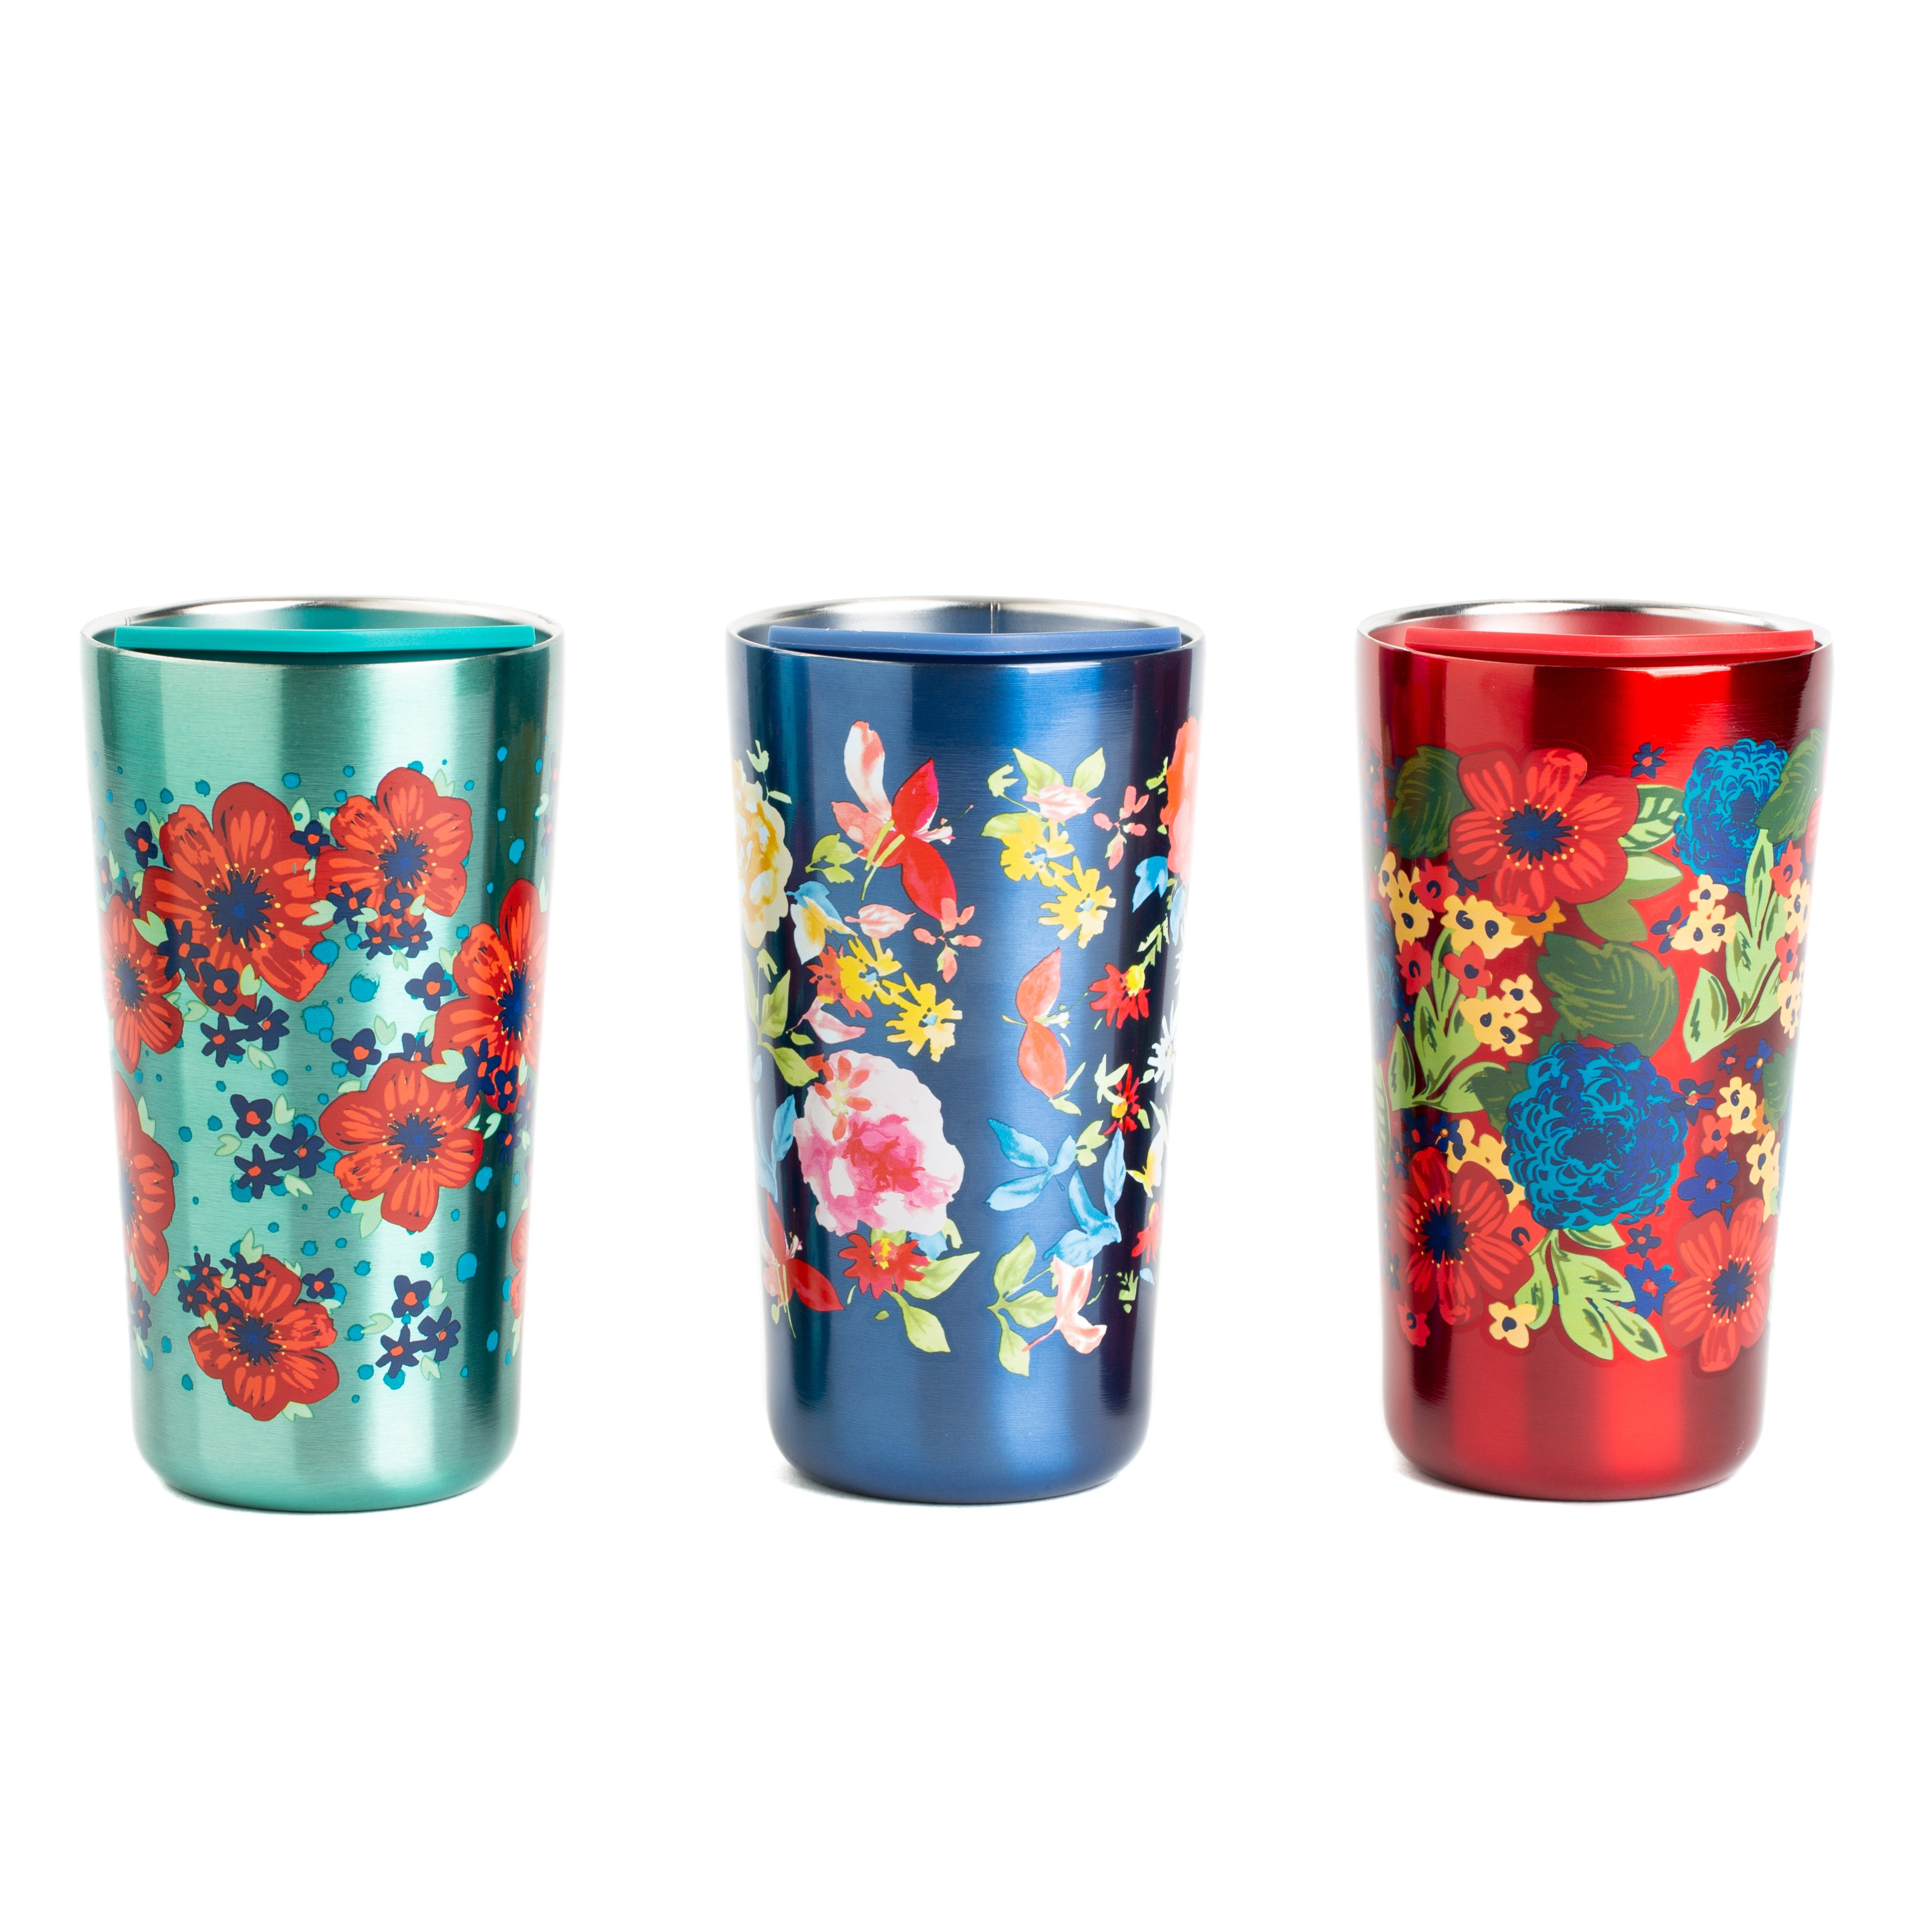 The Pioneer Woman Red, Navy, Teal Steel Floral Stainless Tumbler, 3 Piece